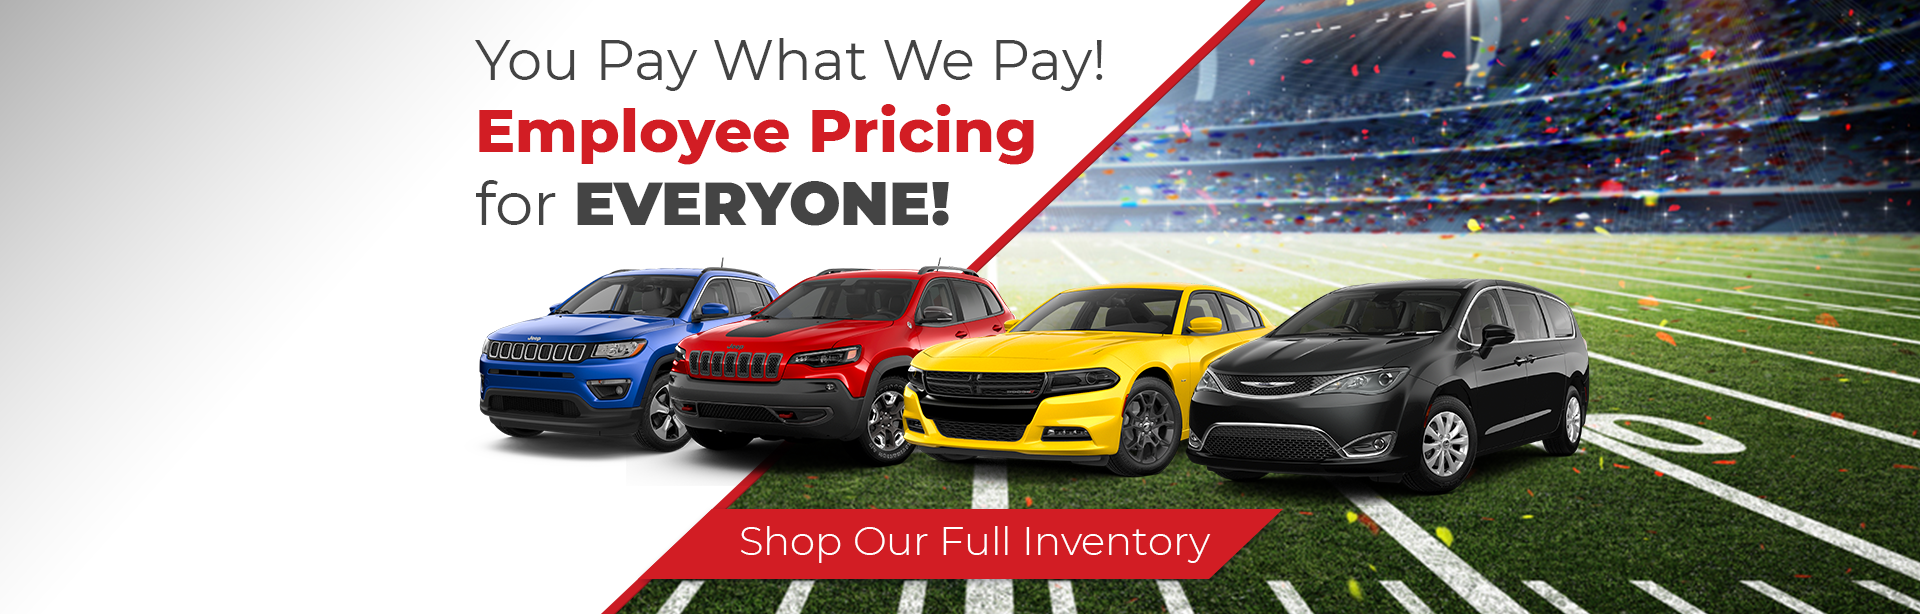 September 2018 FCA Employee Pricing near Indianapolis.